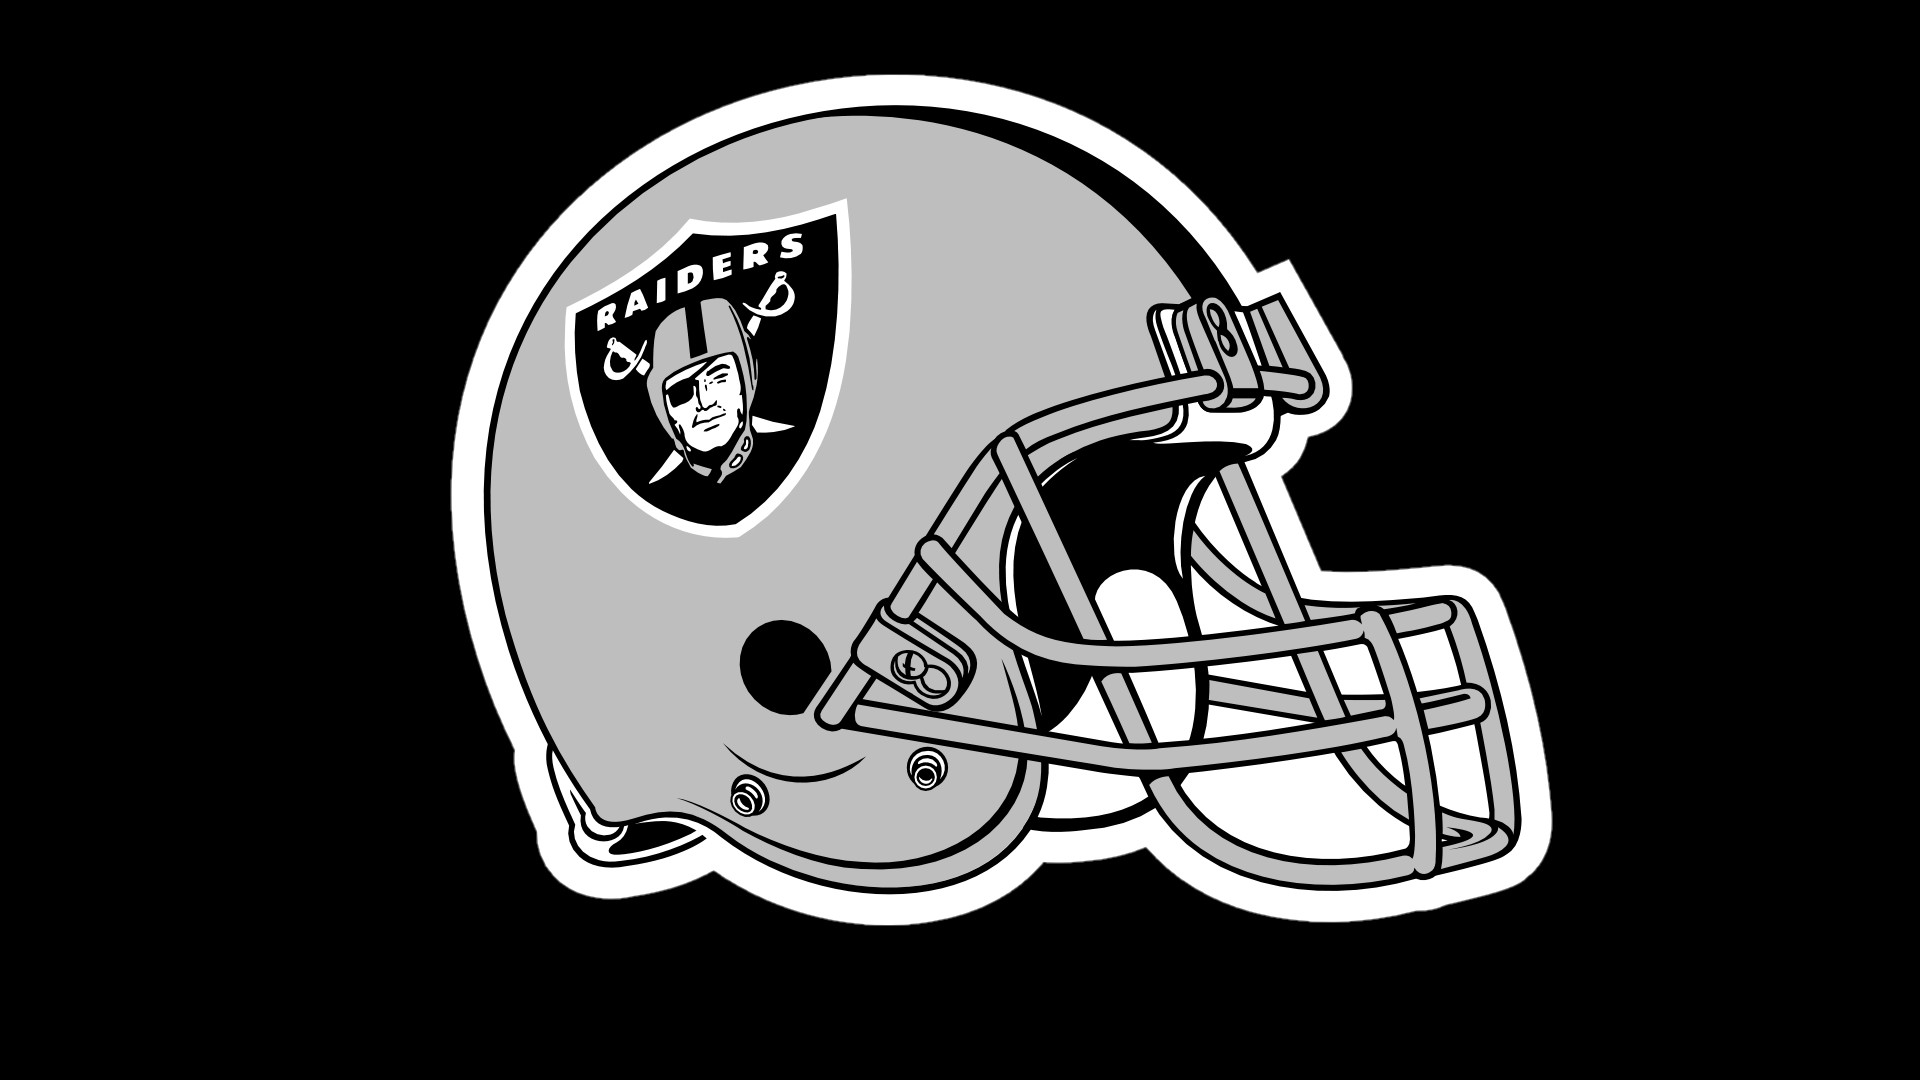 Oakland Raiders Helmet Logo On Black Background 1920x1080 HD by 1920x1080